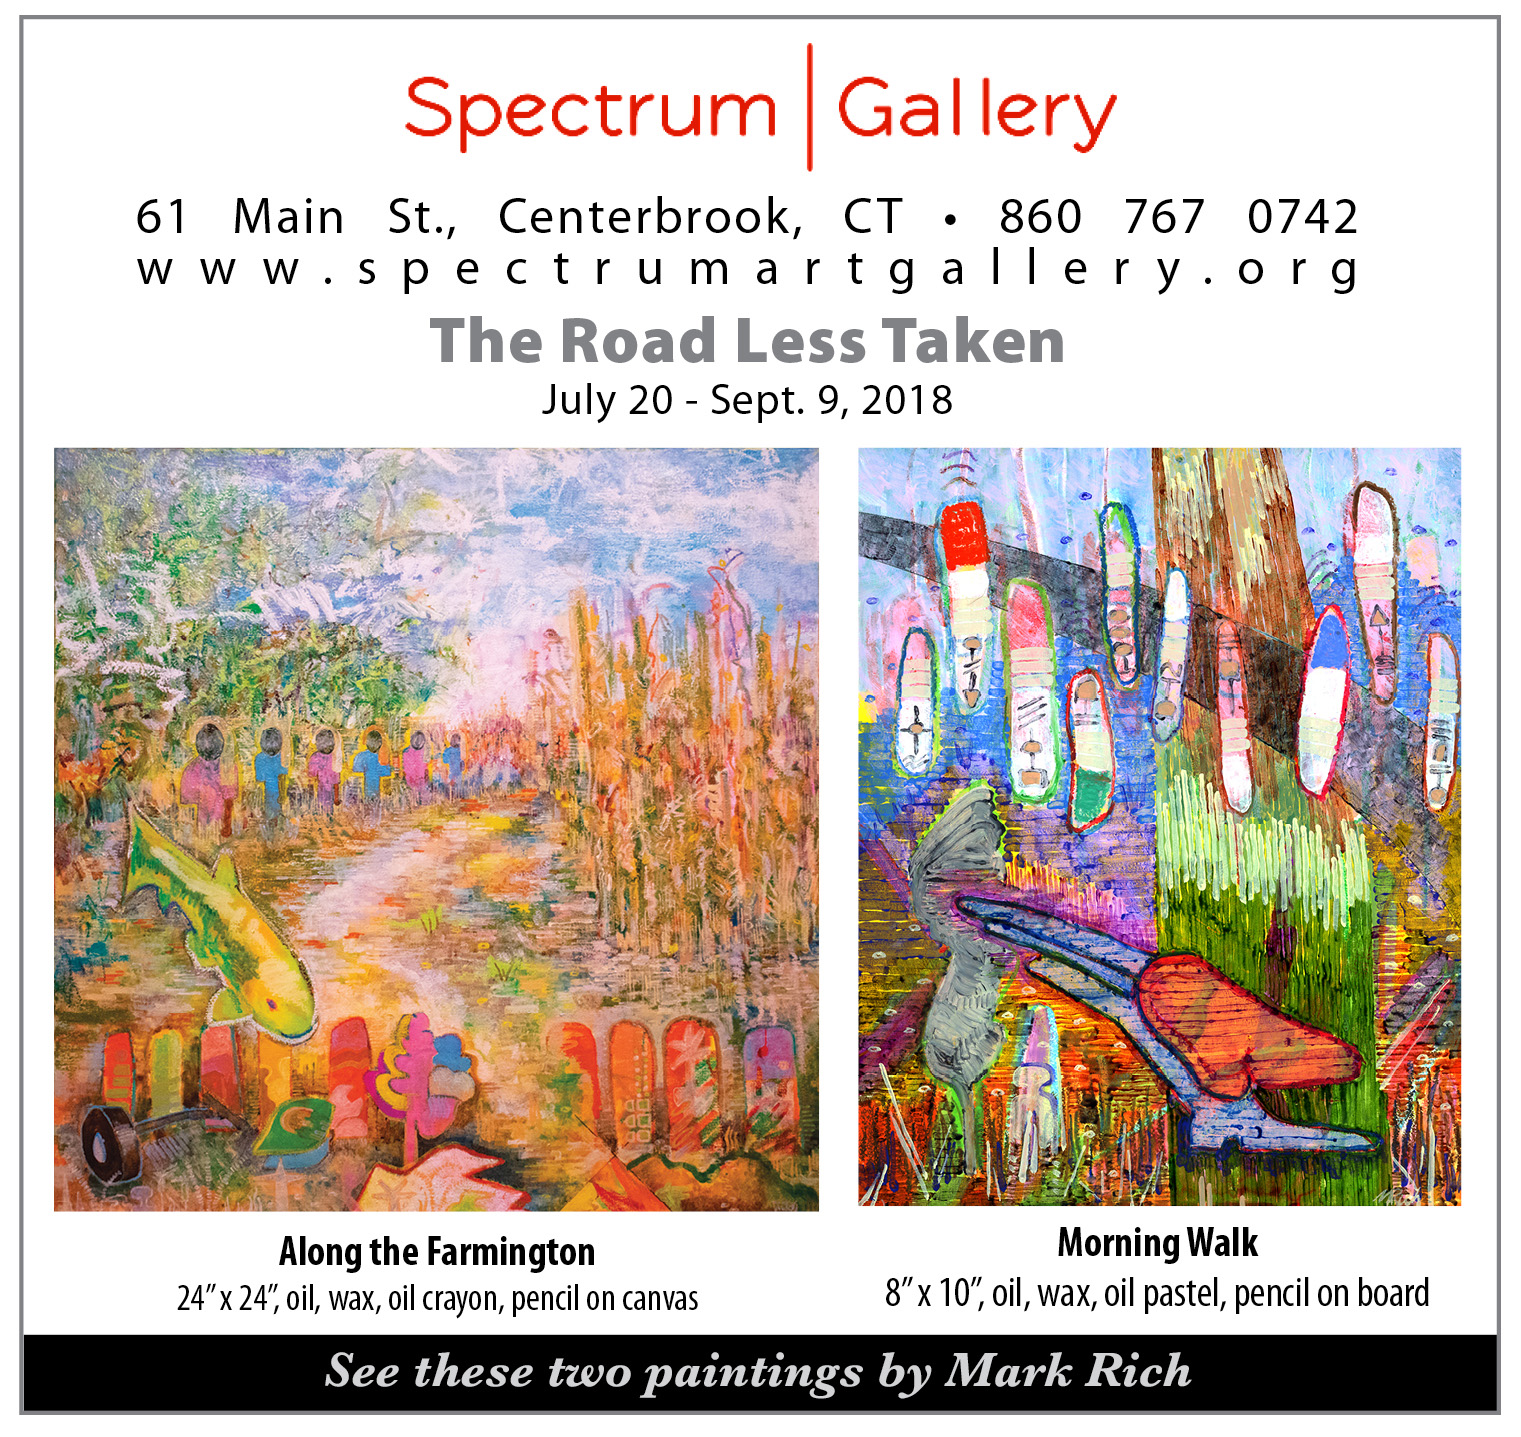 A new venue for me, The Spectrum Gallery in Centerbrook, CT.